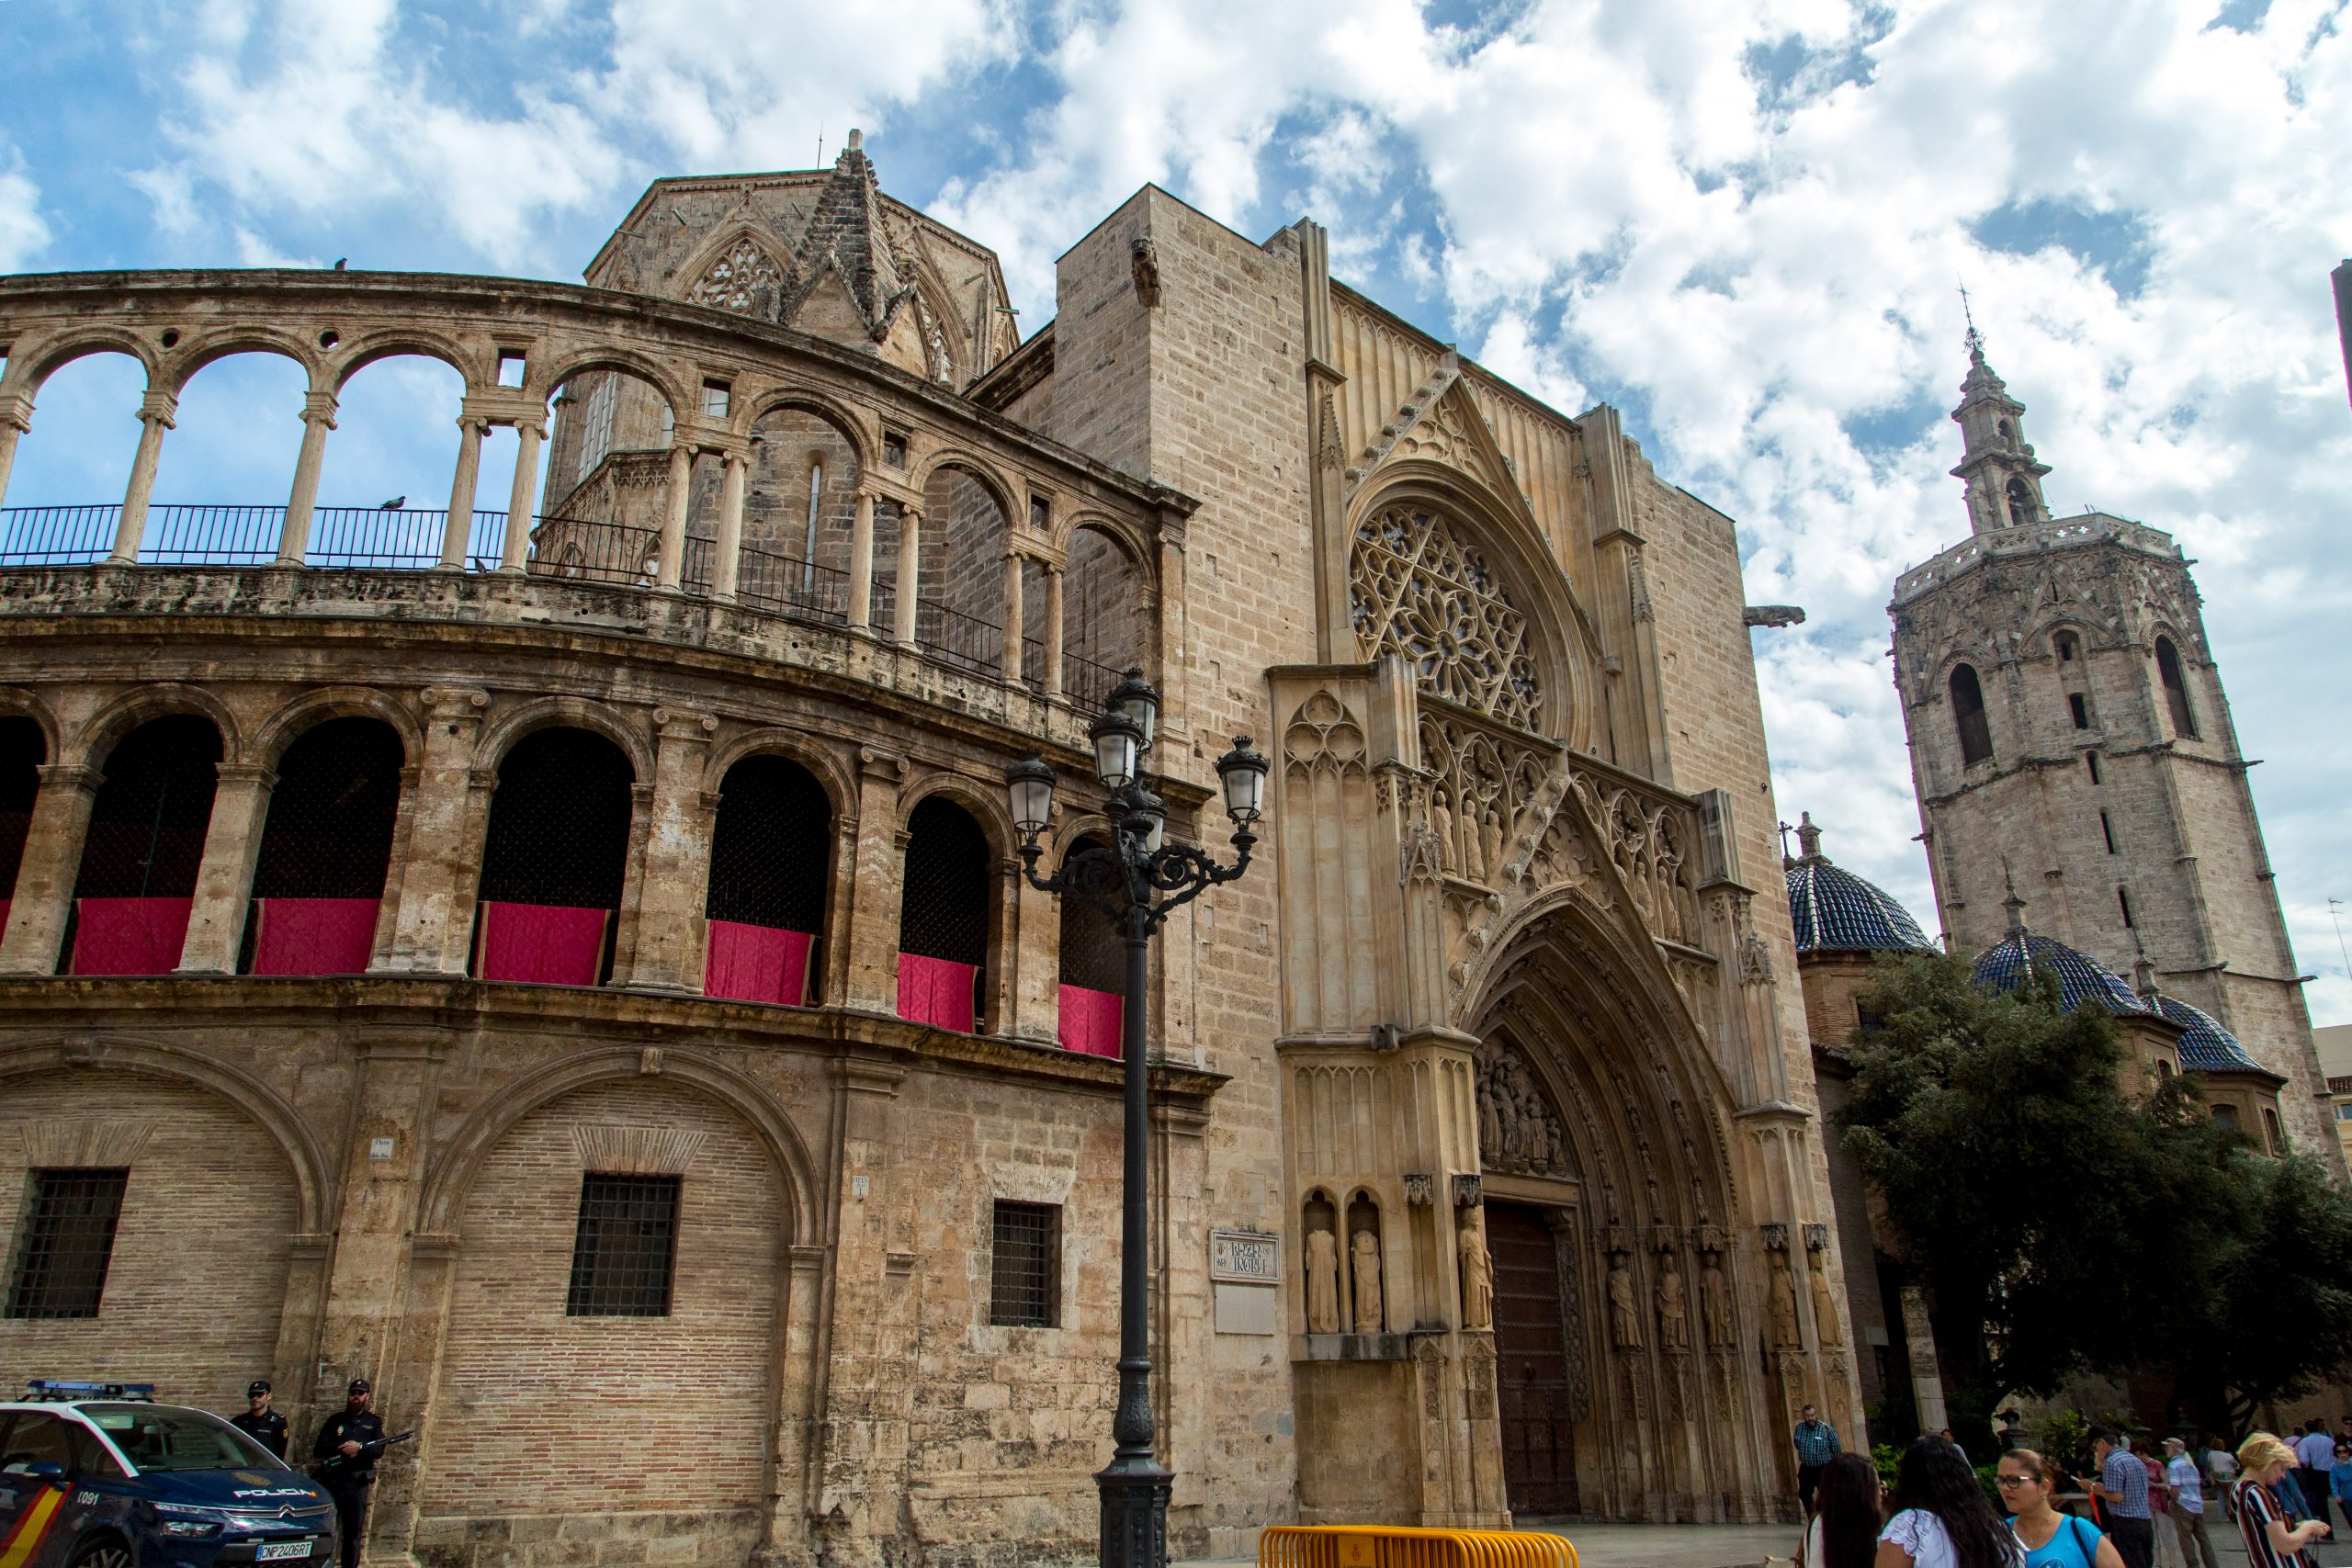 View of St. Mary's Cathedral in Valencia, Spain from the Plaza de la Virgen